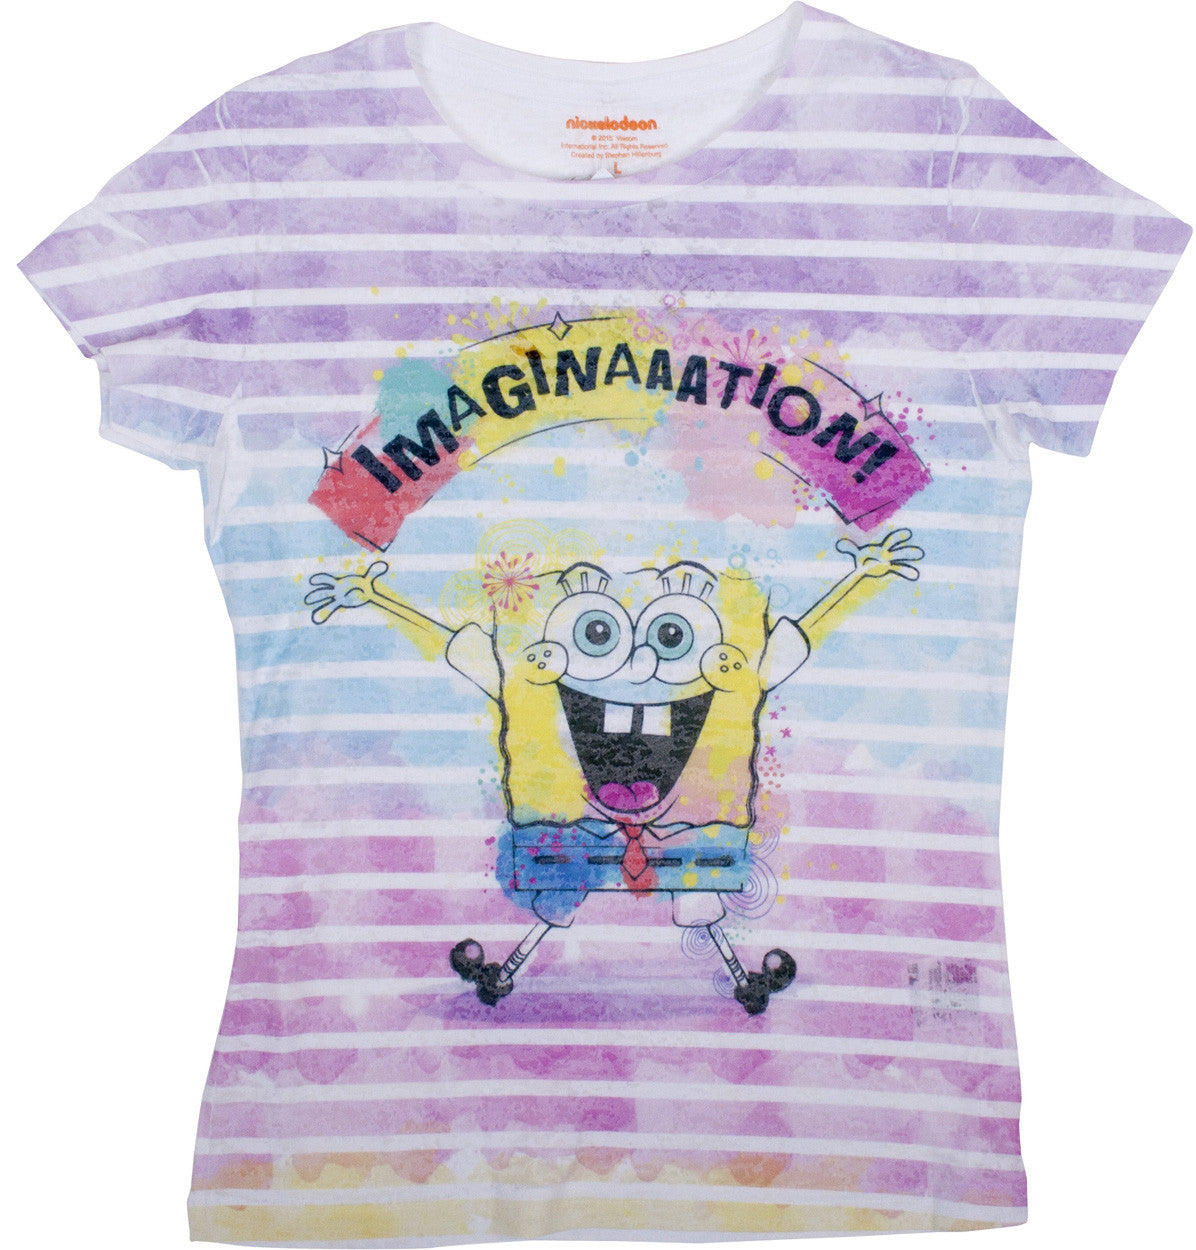 SpongeBob SquarePants Imagination Burnout T-shirt